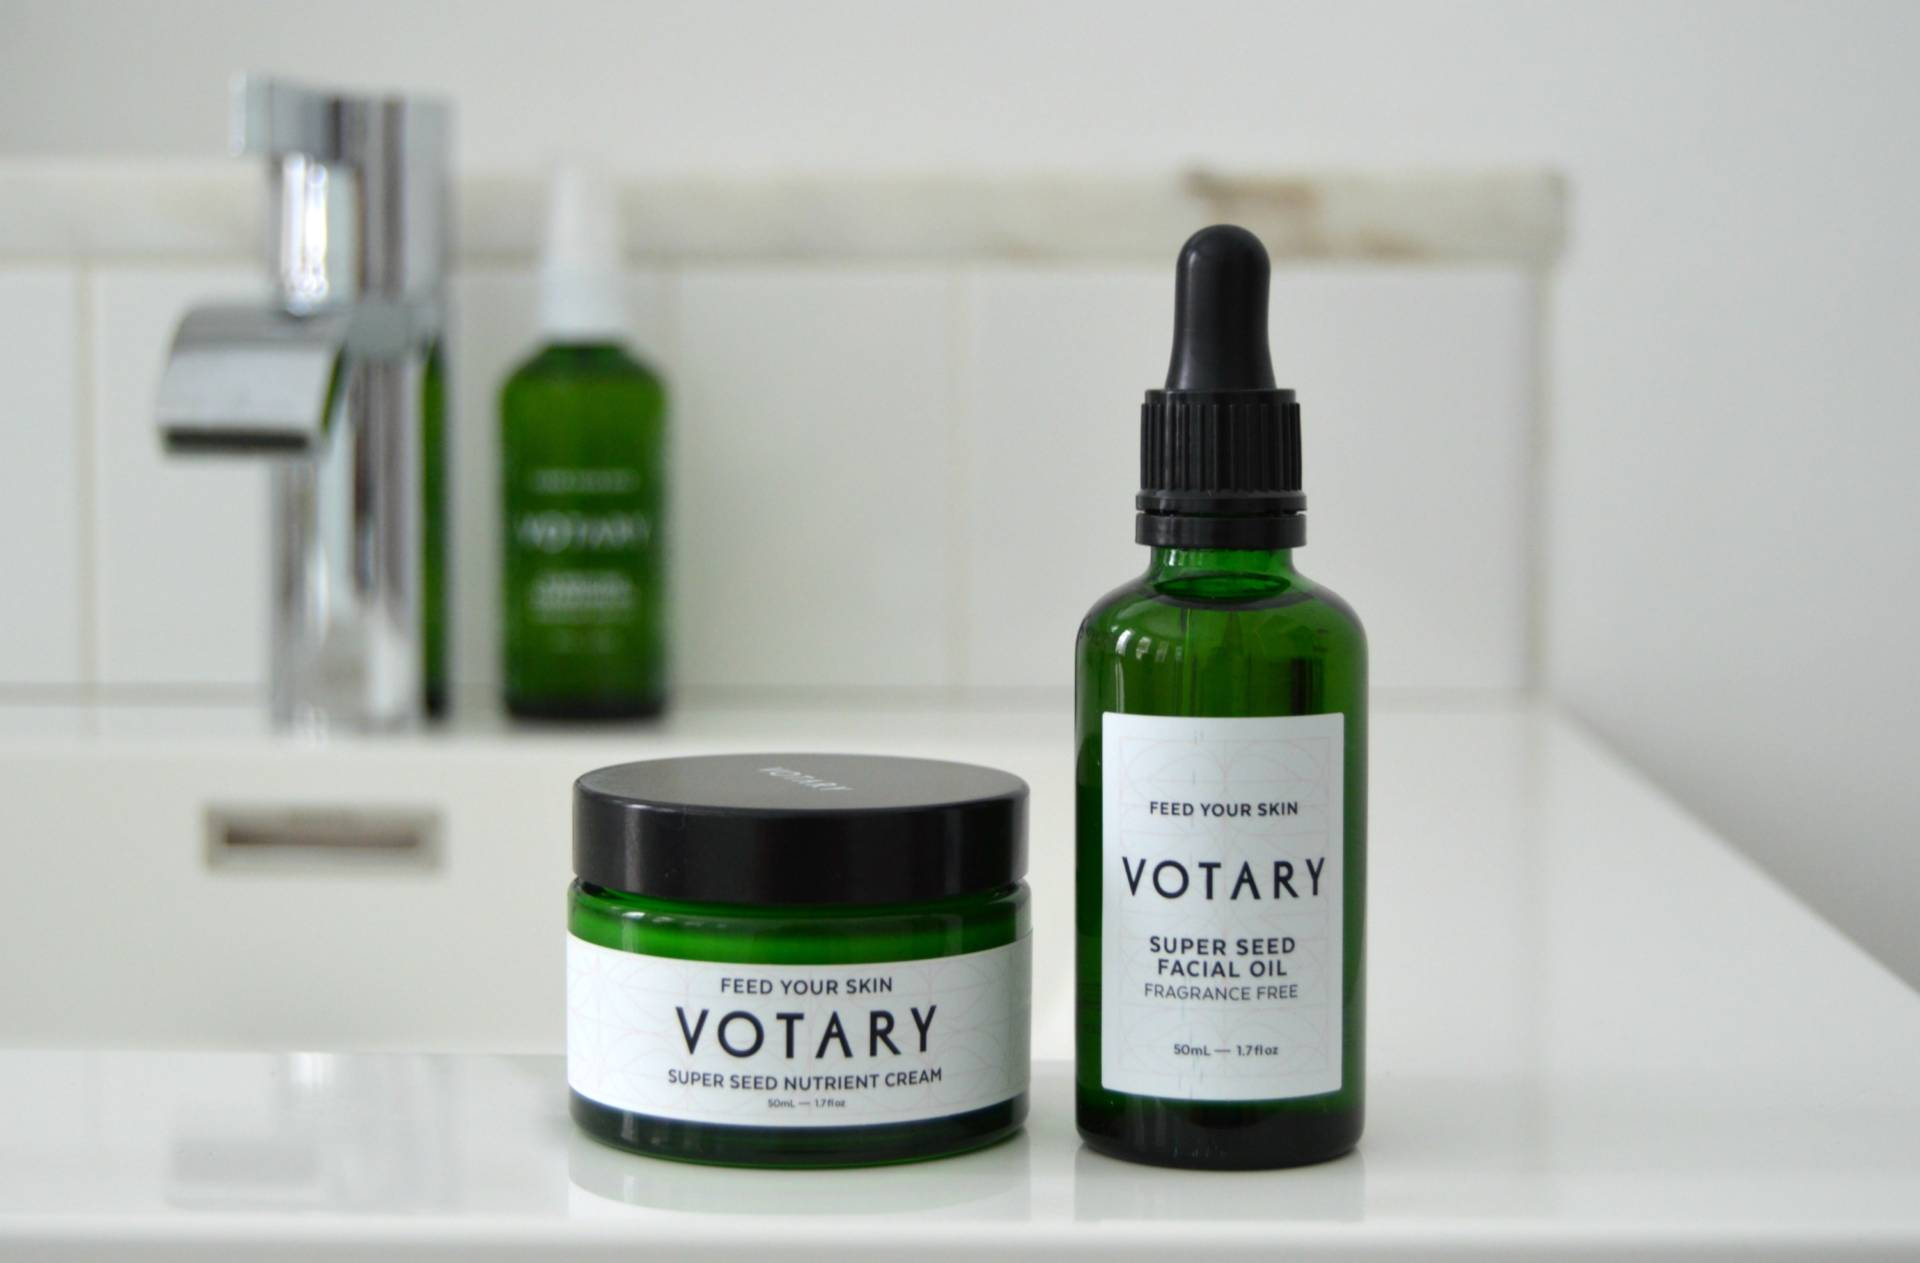 Votary super seed oil reviews